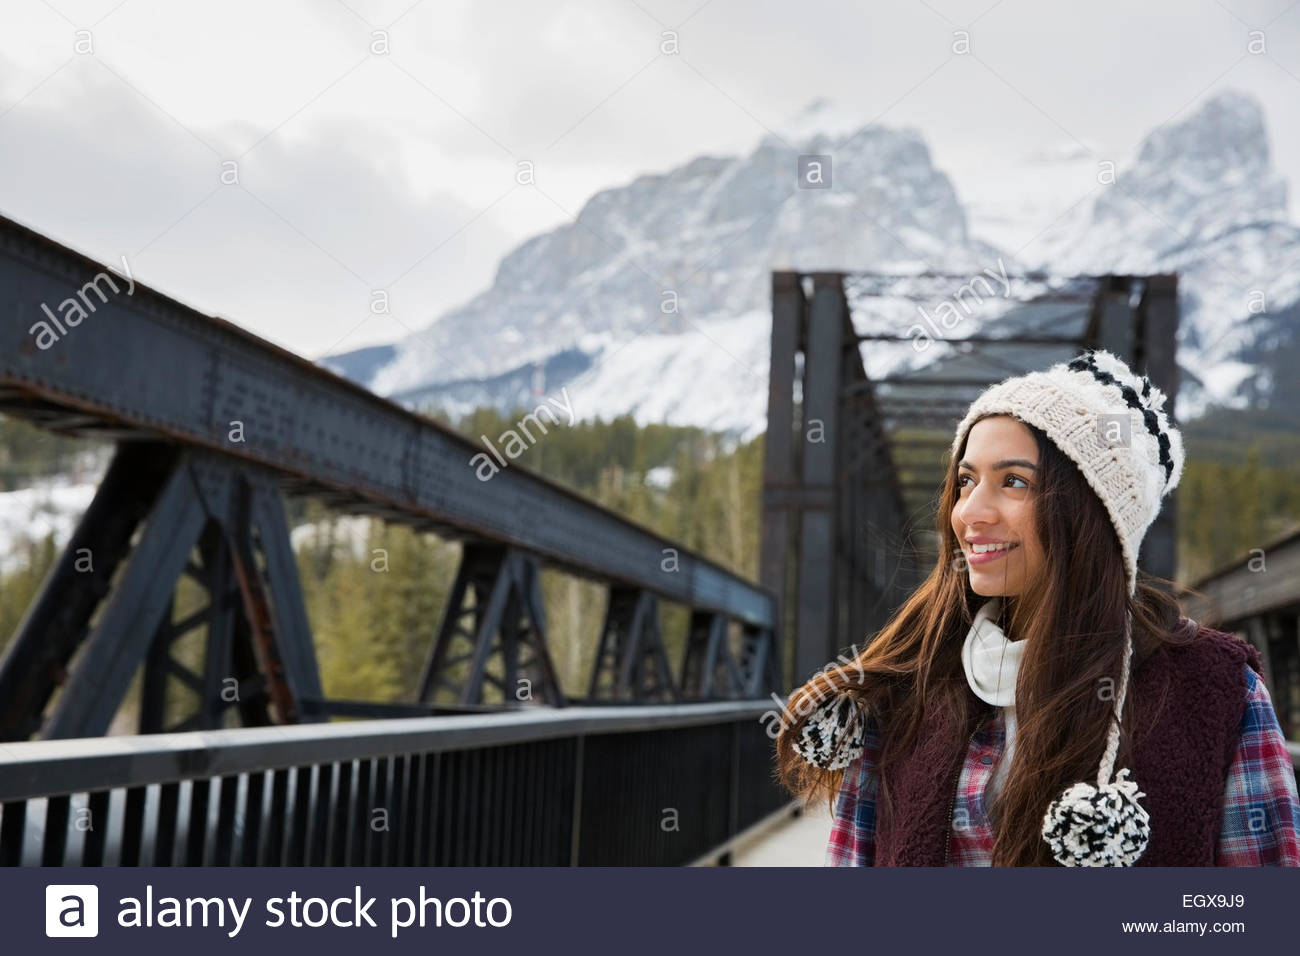 Smiling teenage girl on bridge below snowy mountains - Stock Image